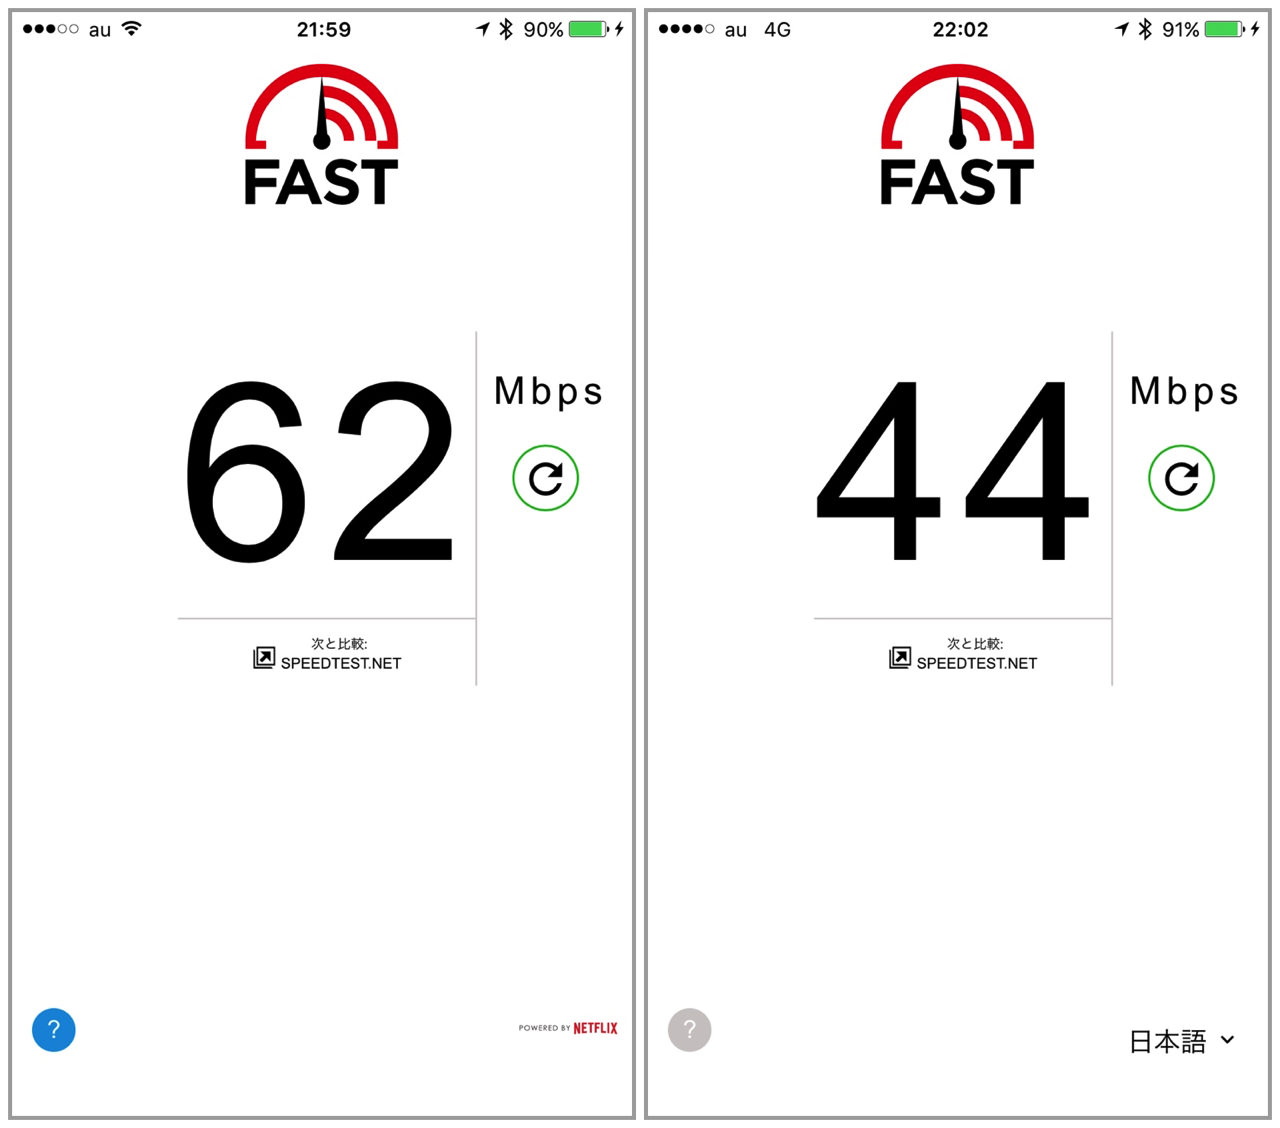 Netflix fast speed test1